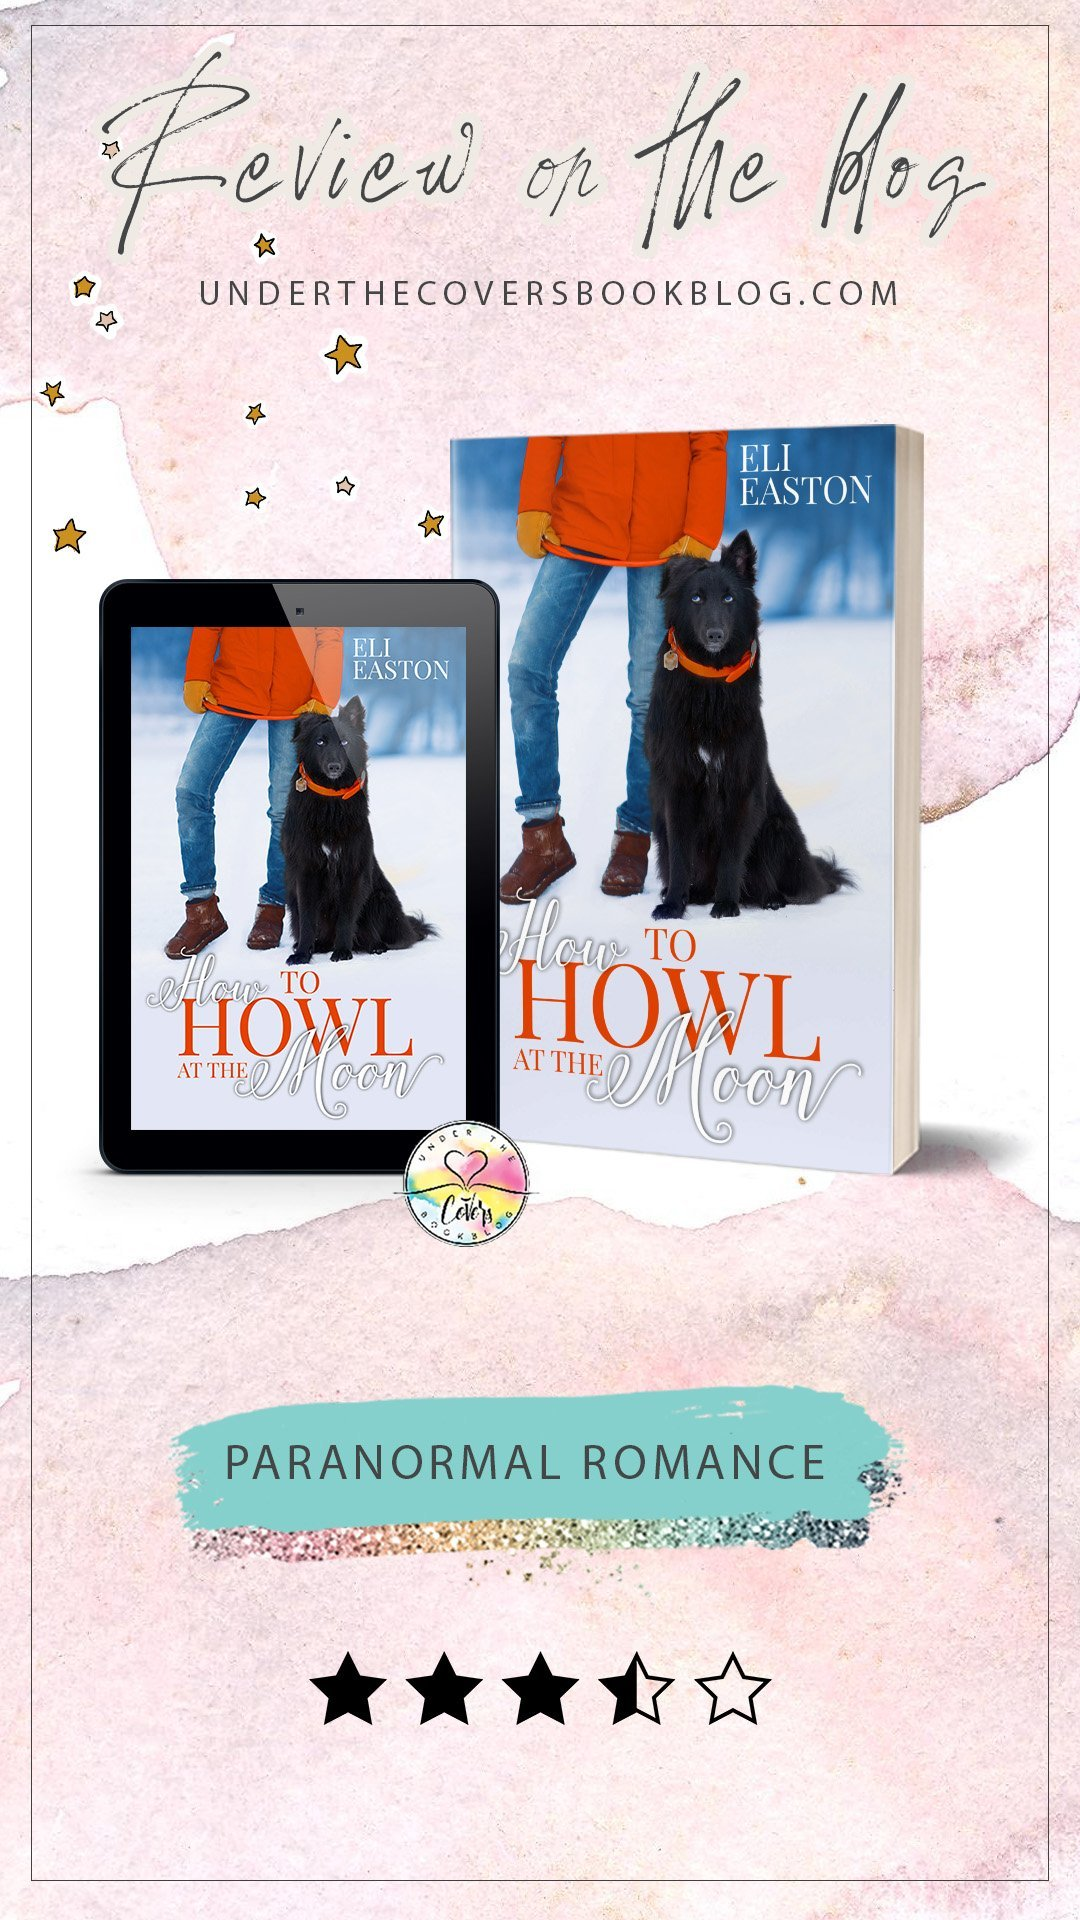 Romanceopoly Review: How to Howl at the Moon by Eli Easton